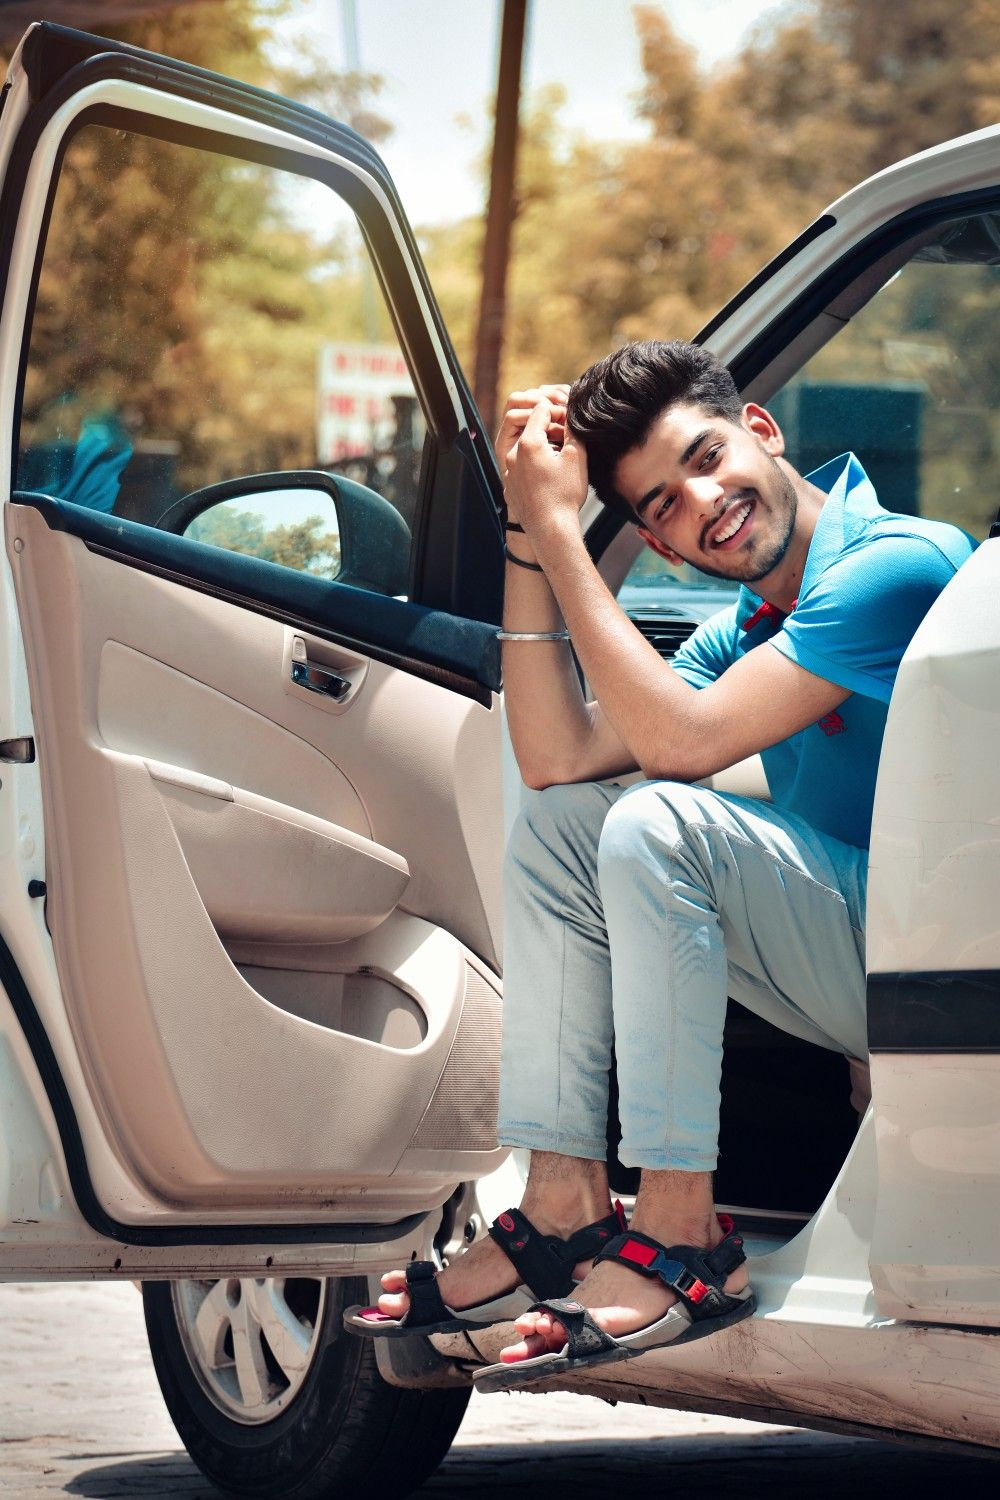 Pin By Shaik Kalam On Sumit Chahar Mens Photoshoot Poses Photoshoot Pose Boy Studio Photography Poses